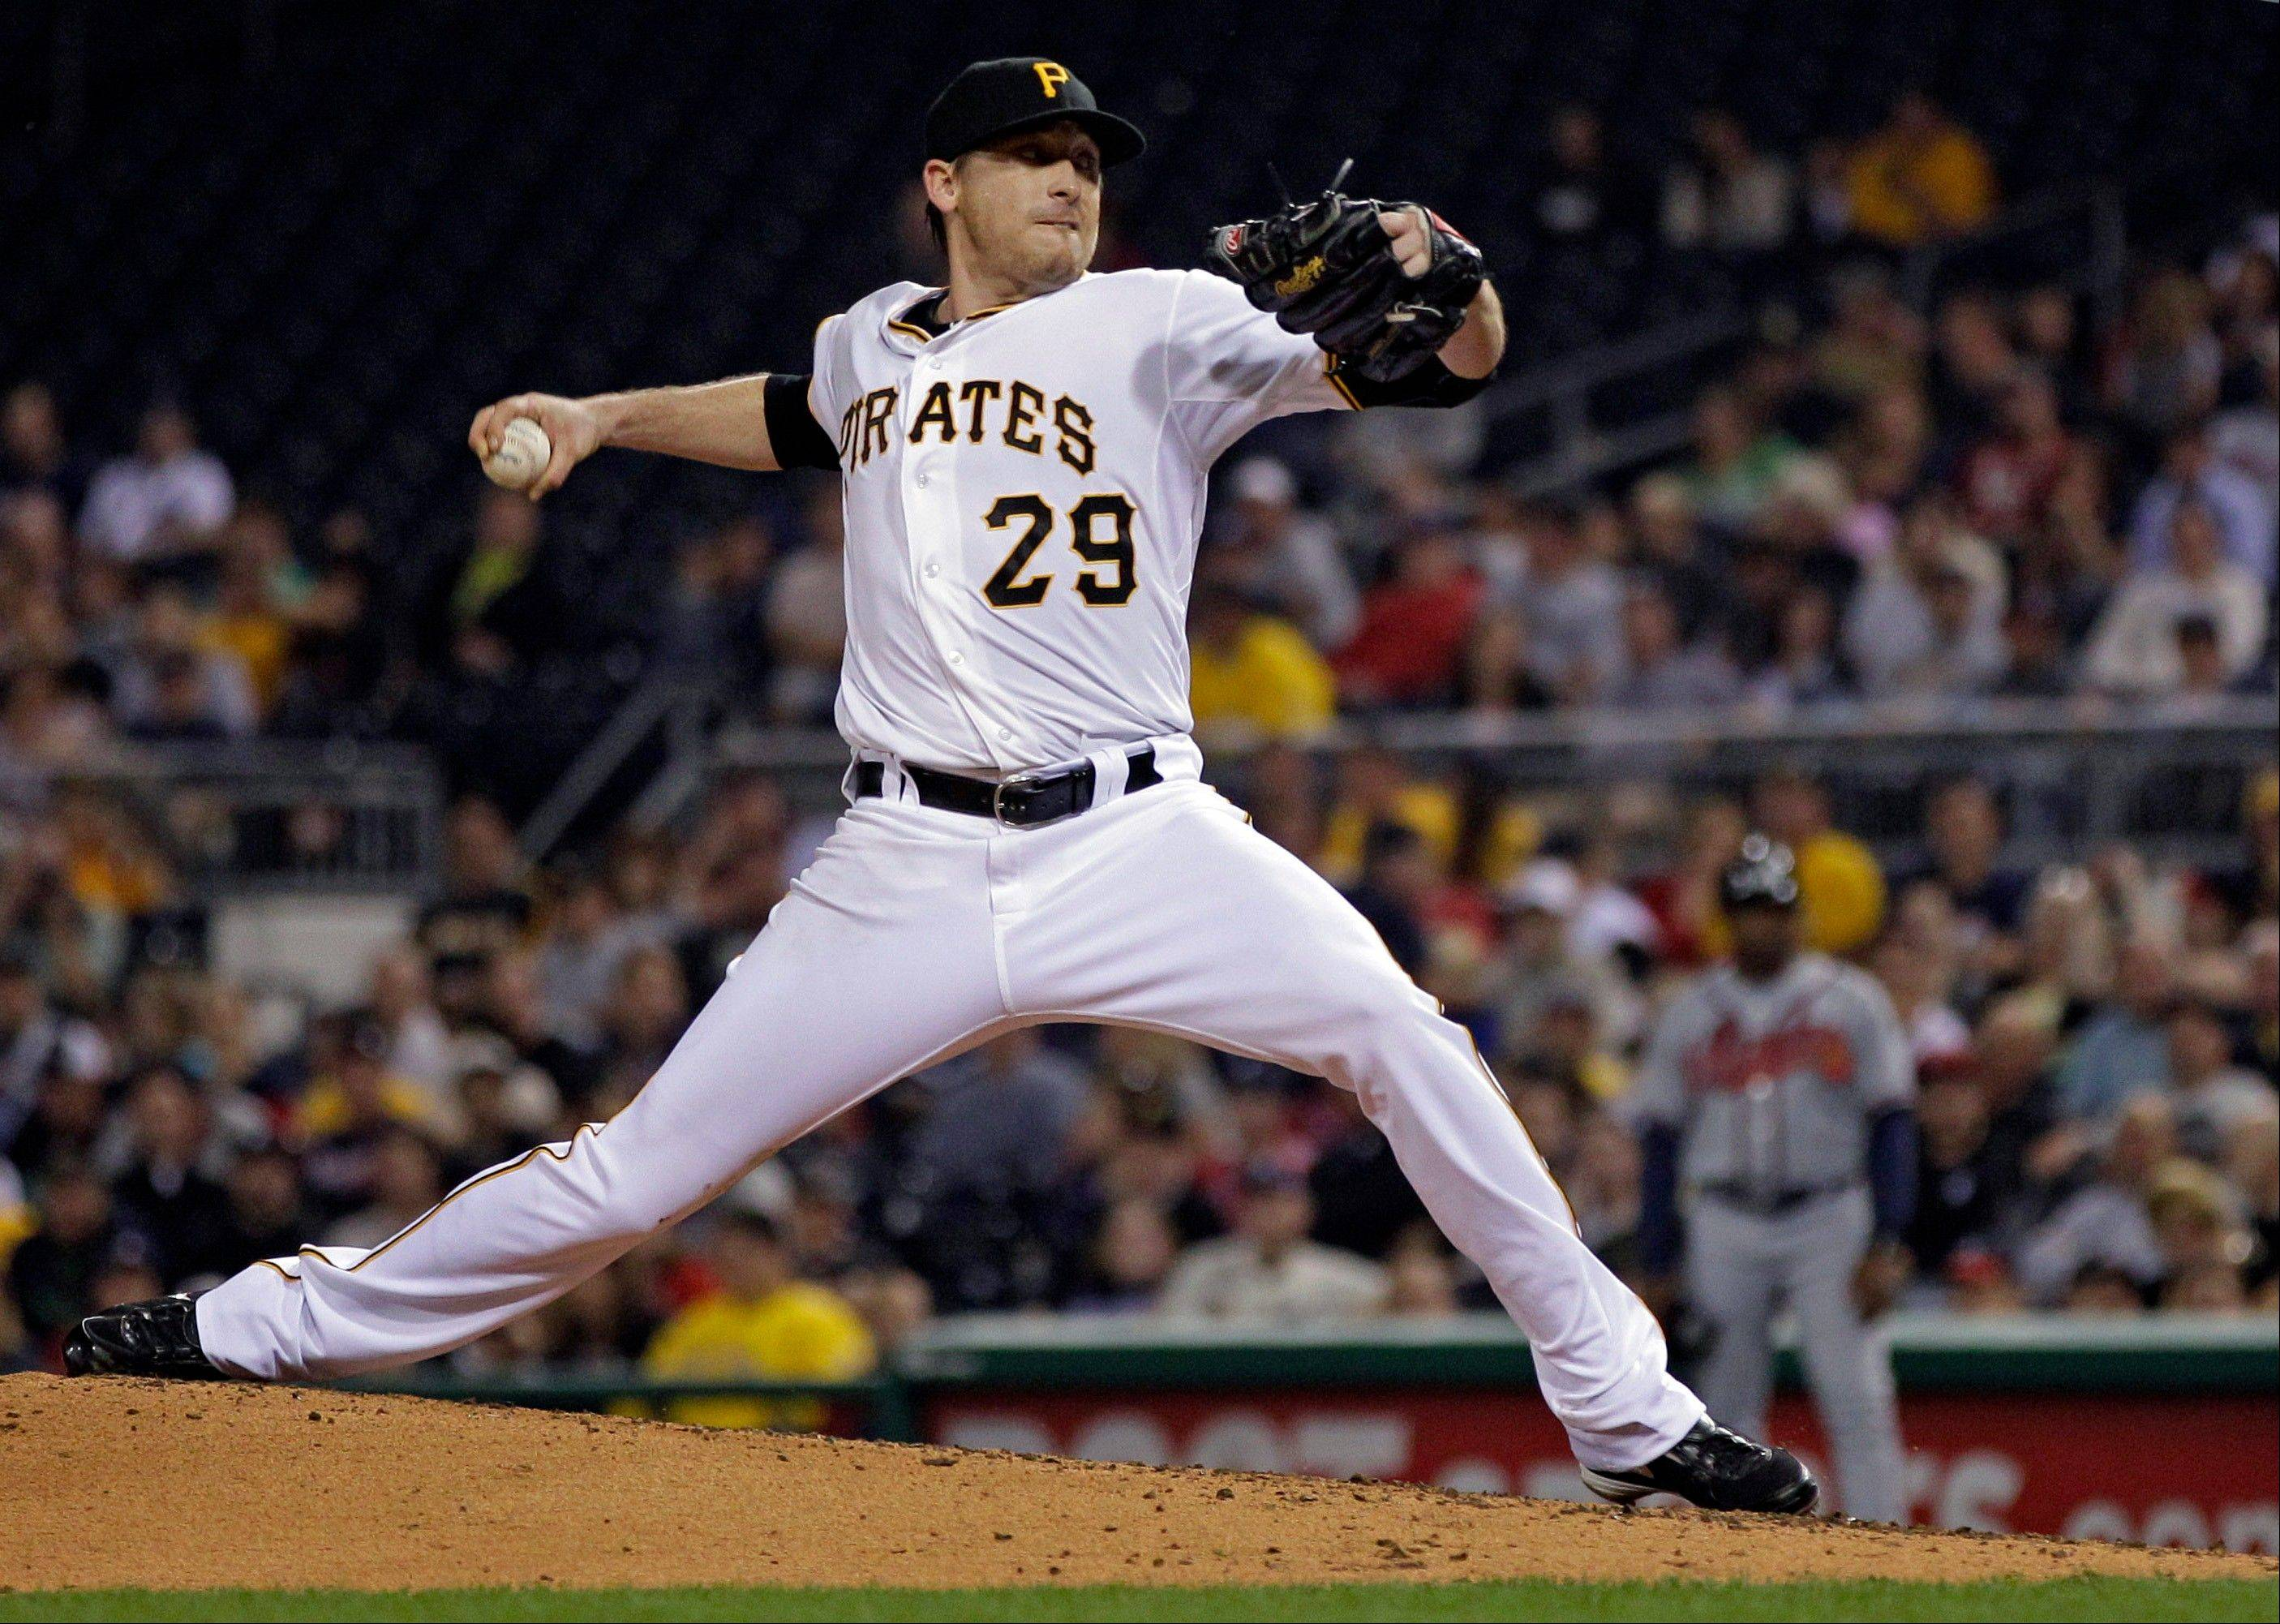 Pirates starting pitcher Kevin Correia struck out five Tuesday night at home against the Braves.